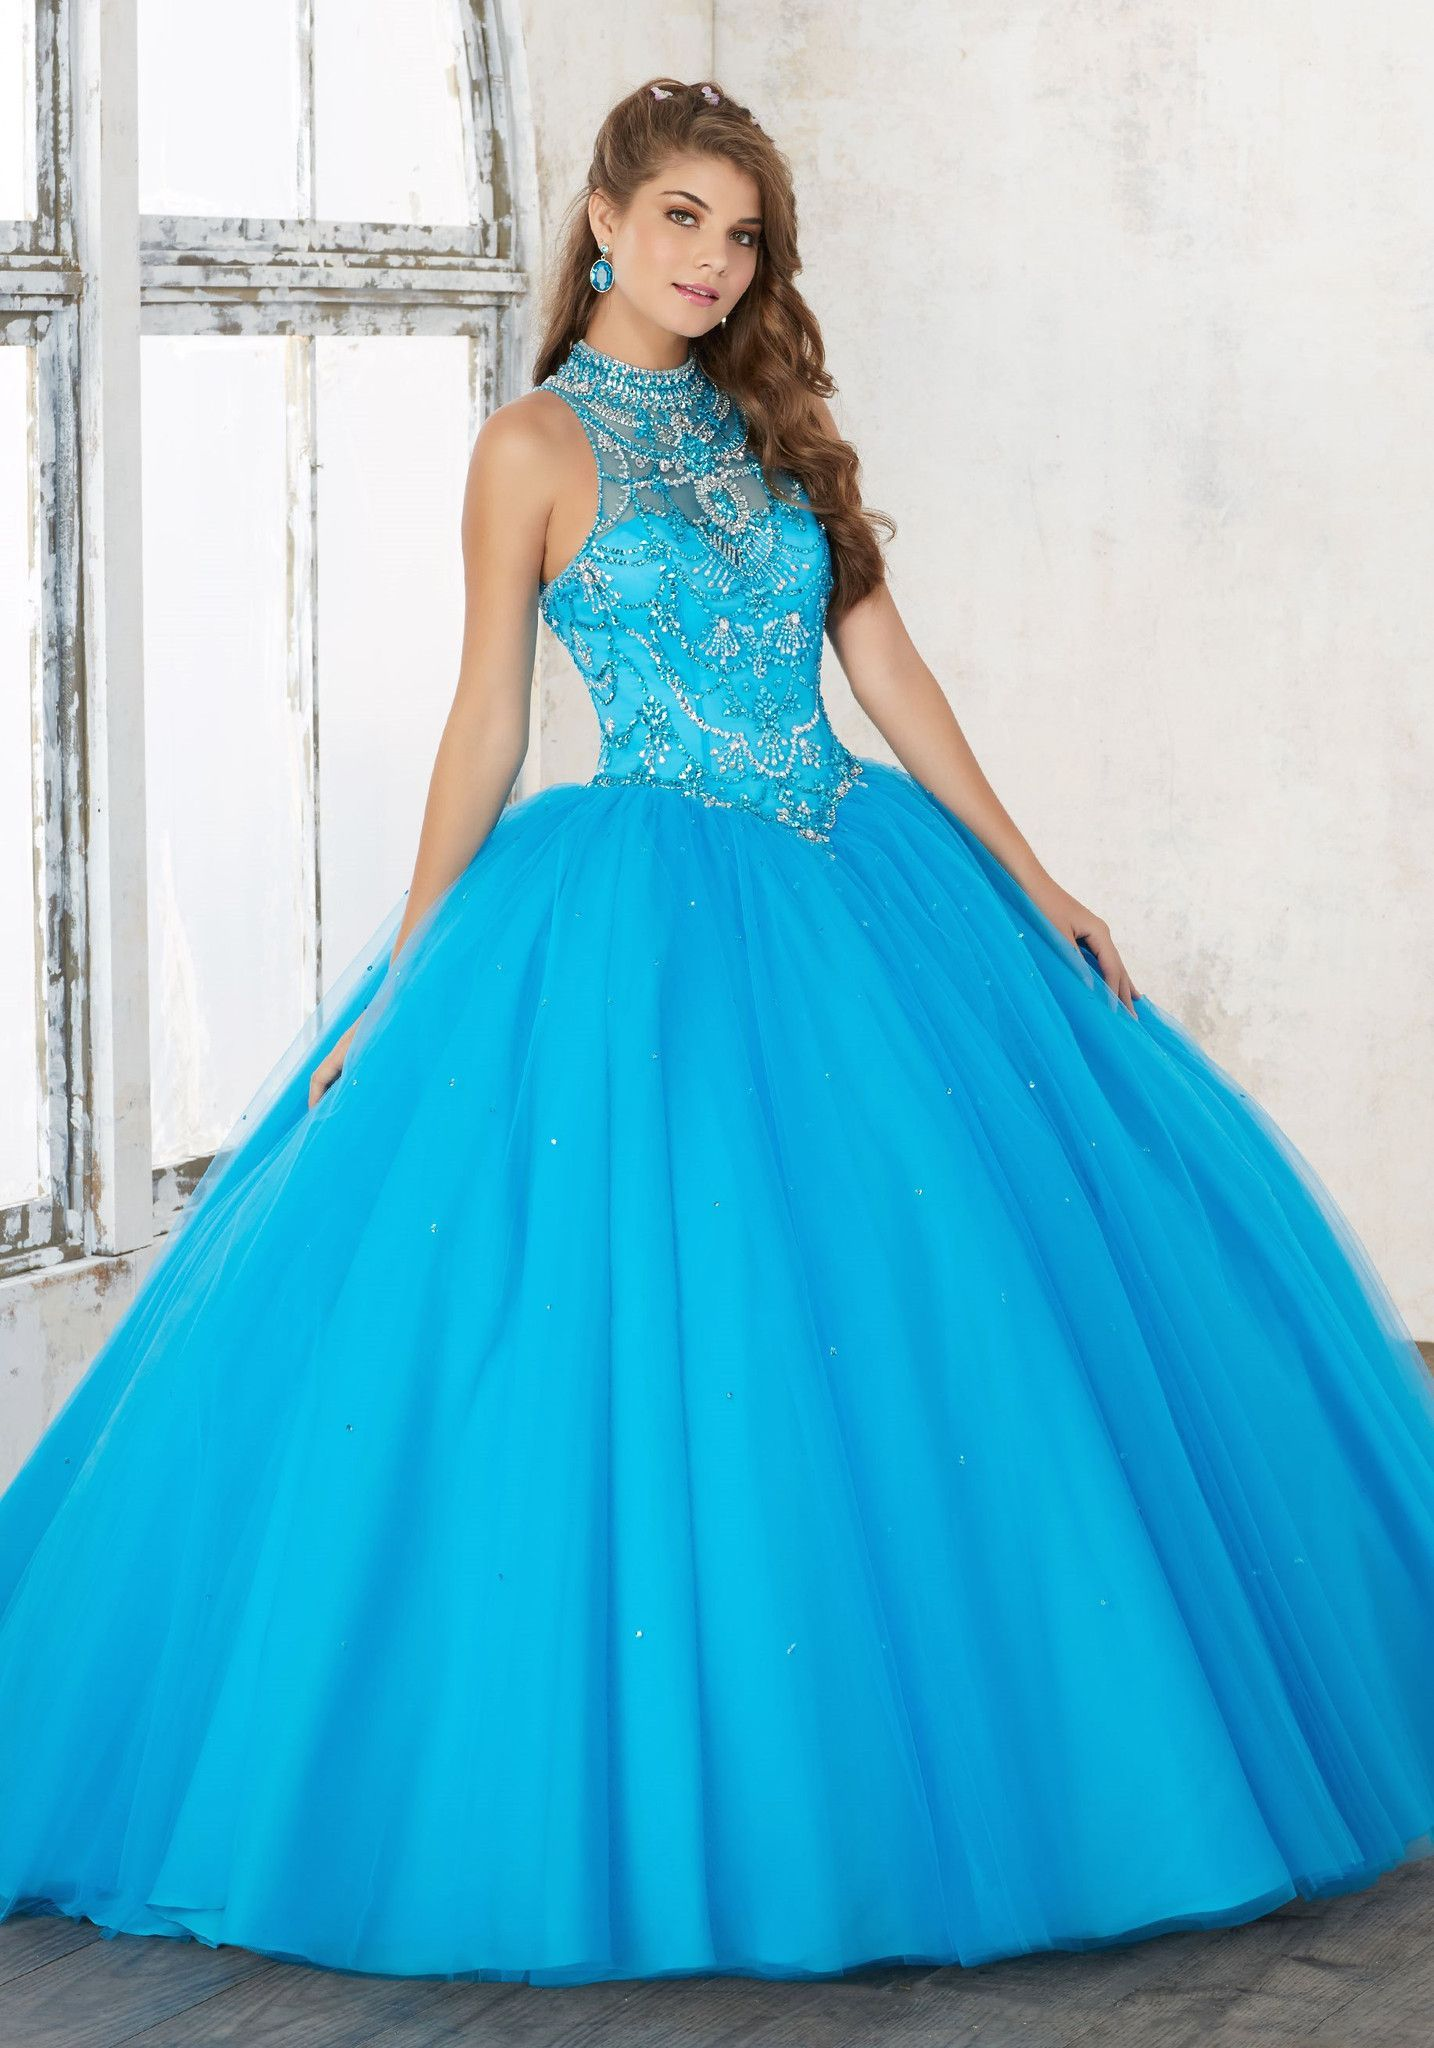 Mori Lee Valencia Quinceanera Dress 60011 | Fiestas de 15, Para 15 y ...